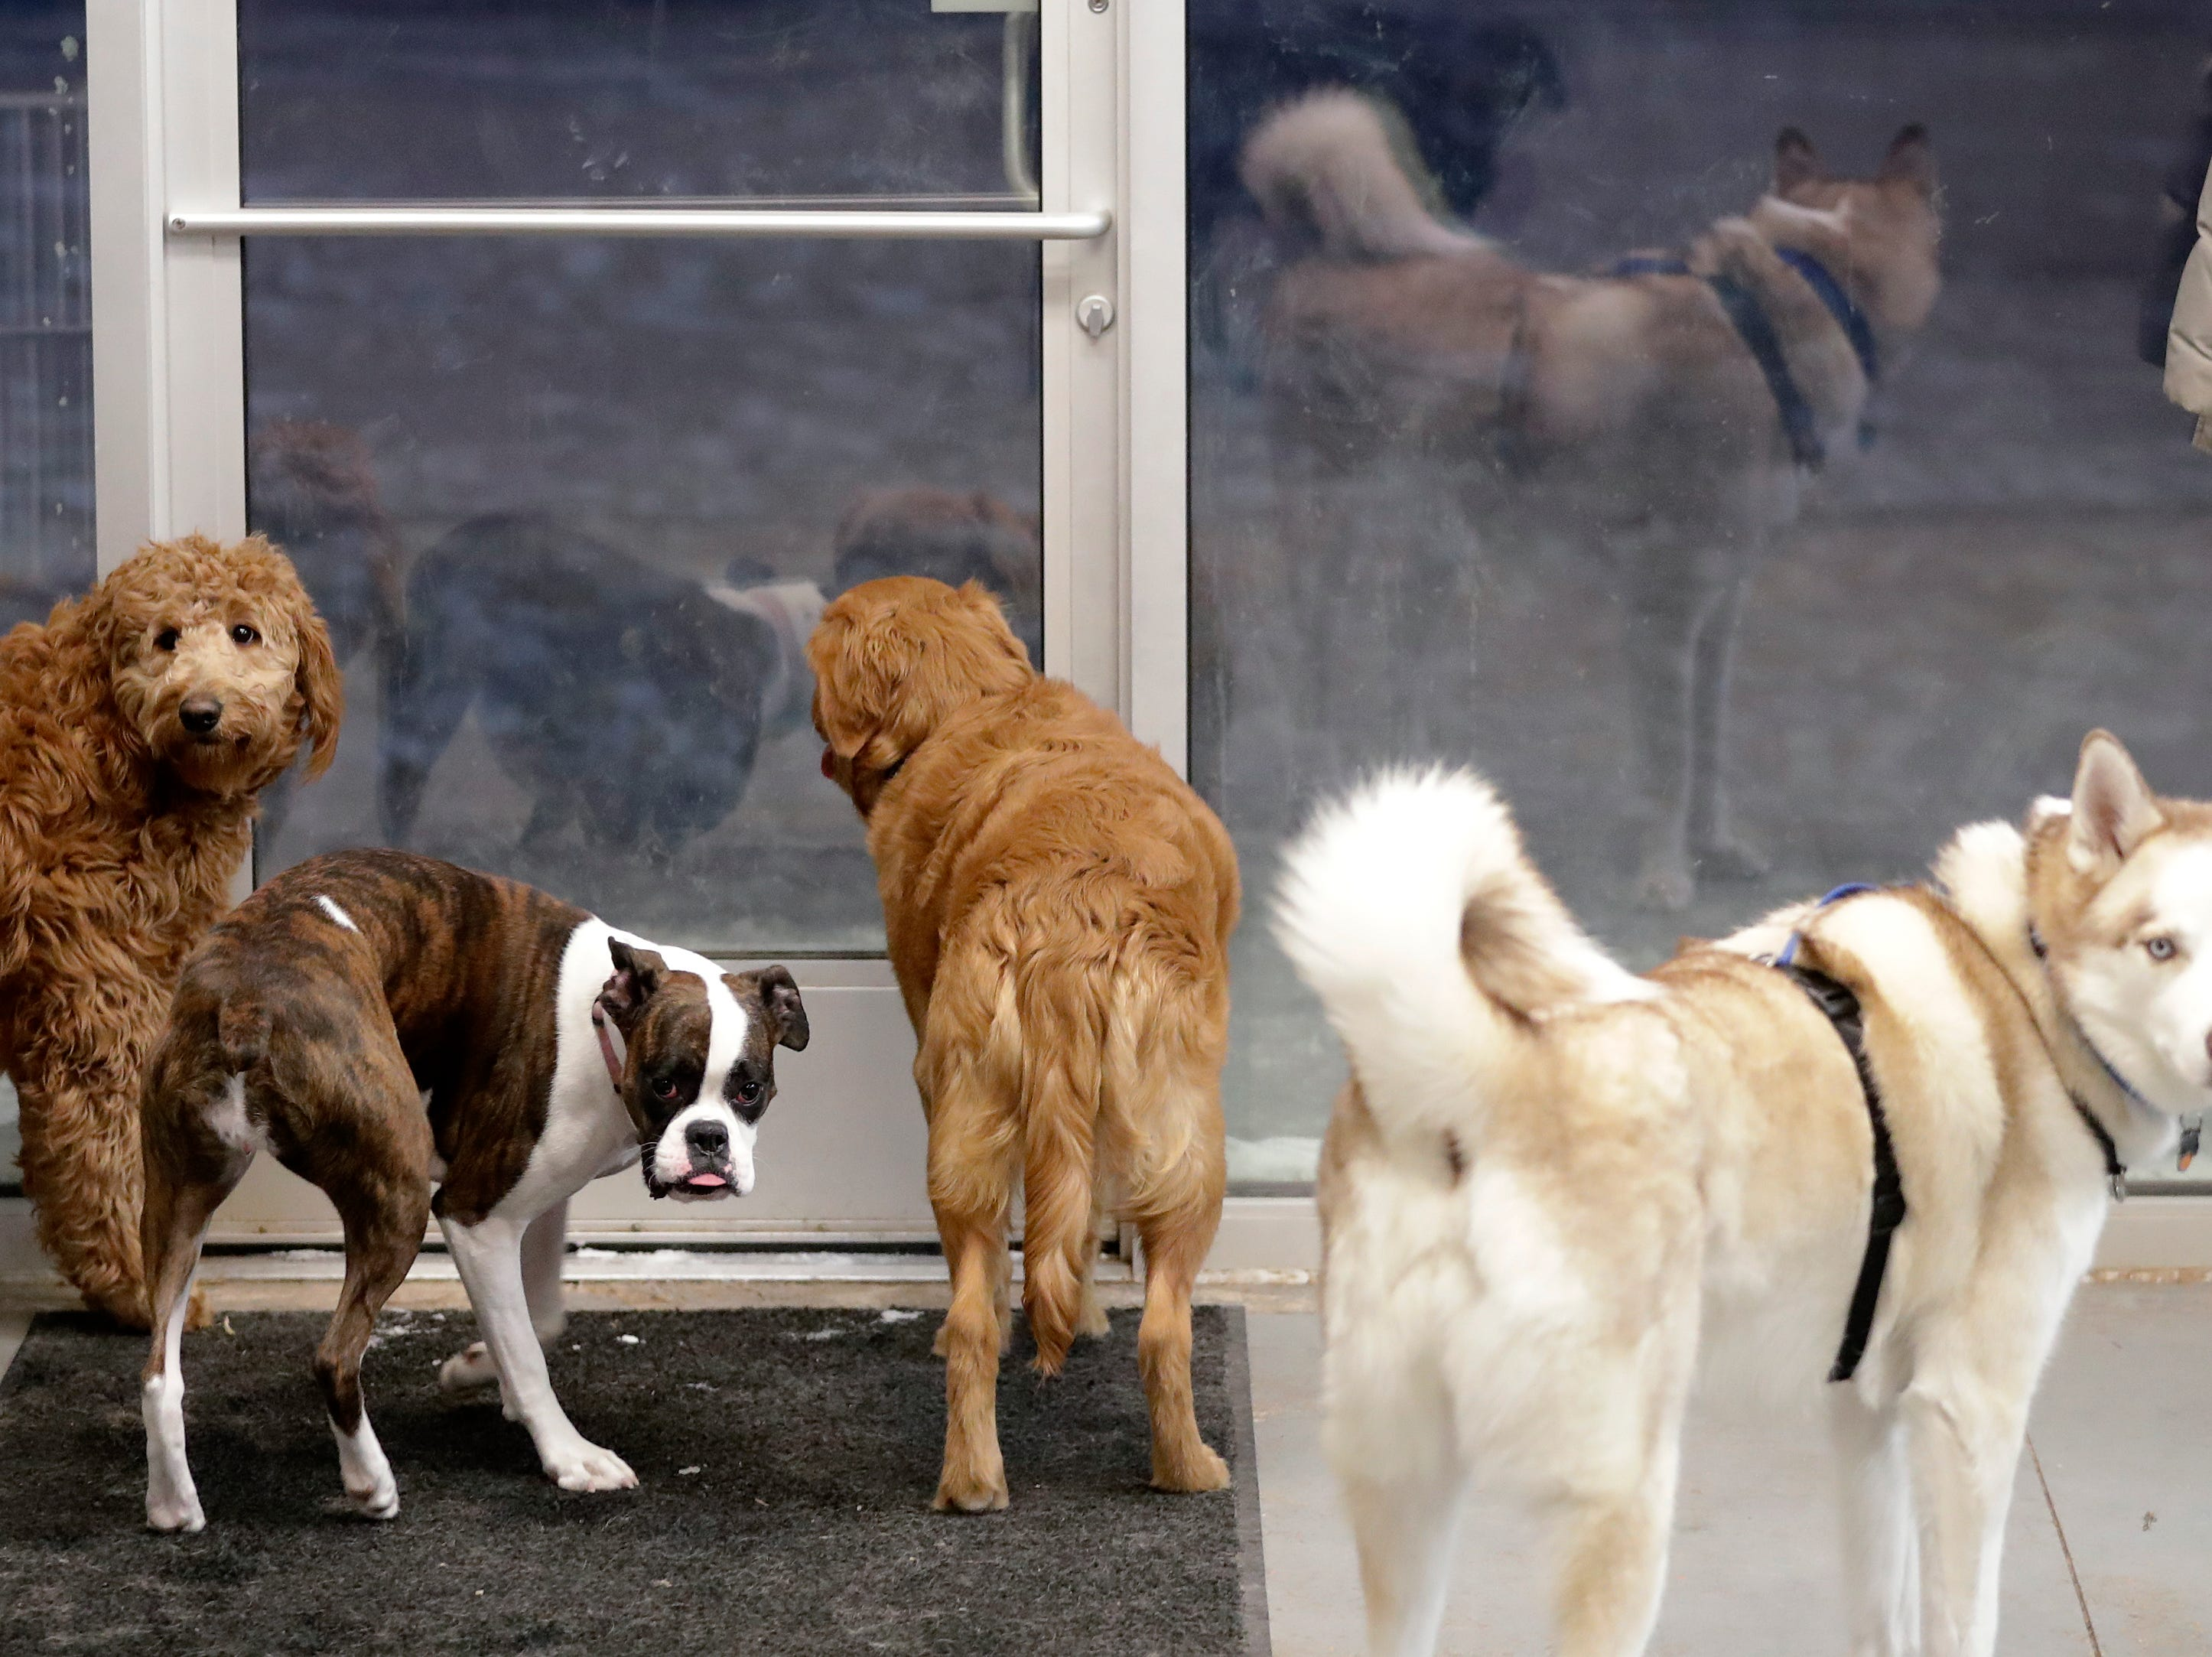 Dogs wait to be let outside at Bark and Brew on Tuesday, Jan. 29, 2019, in Suamico, Wis.